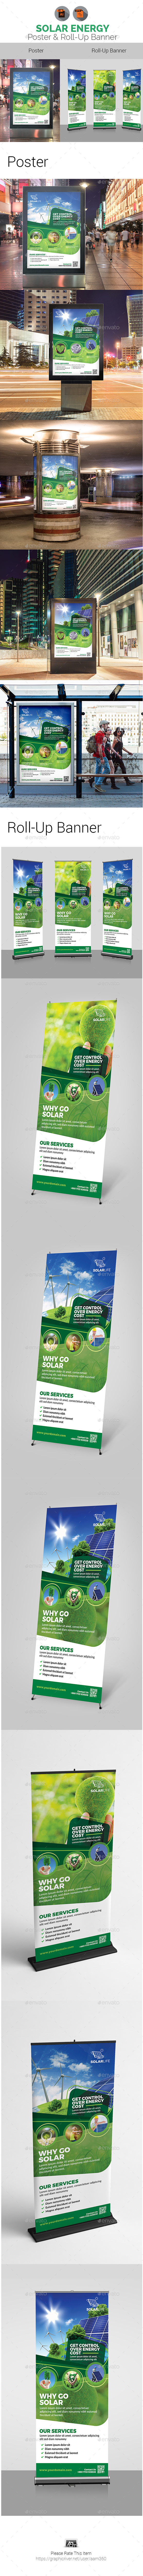 Solar Energy Poster & Roll-Up Banner Template - Signage Print Templates